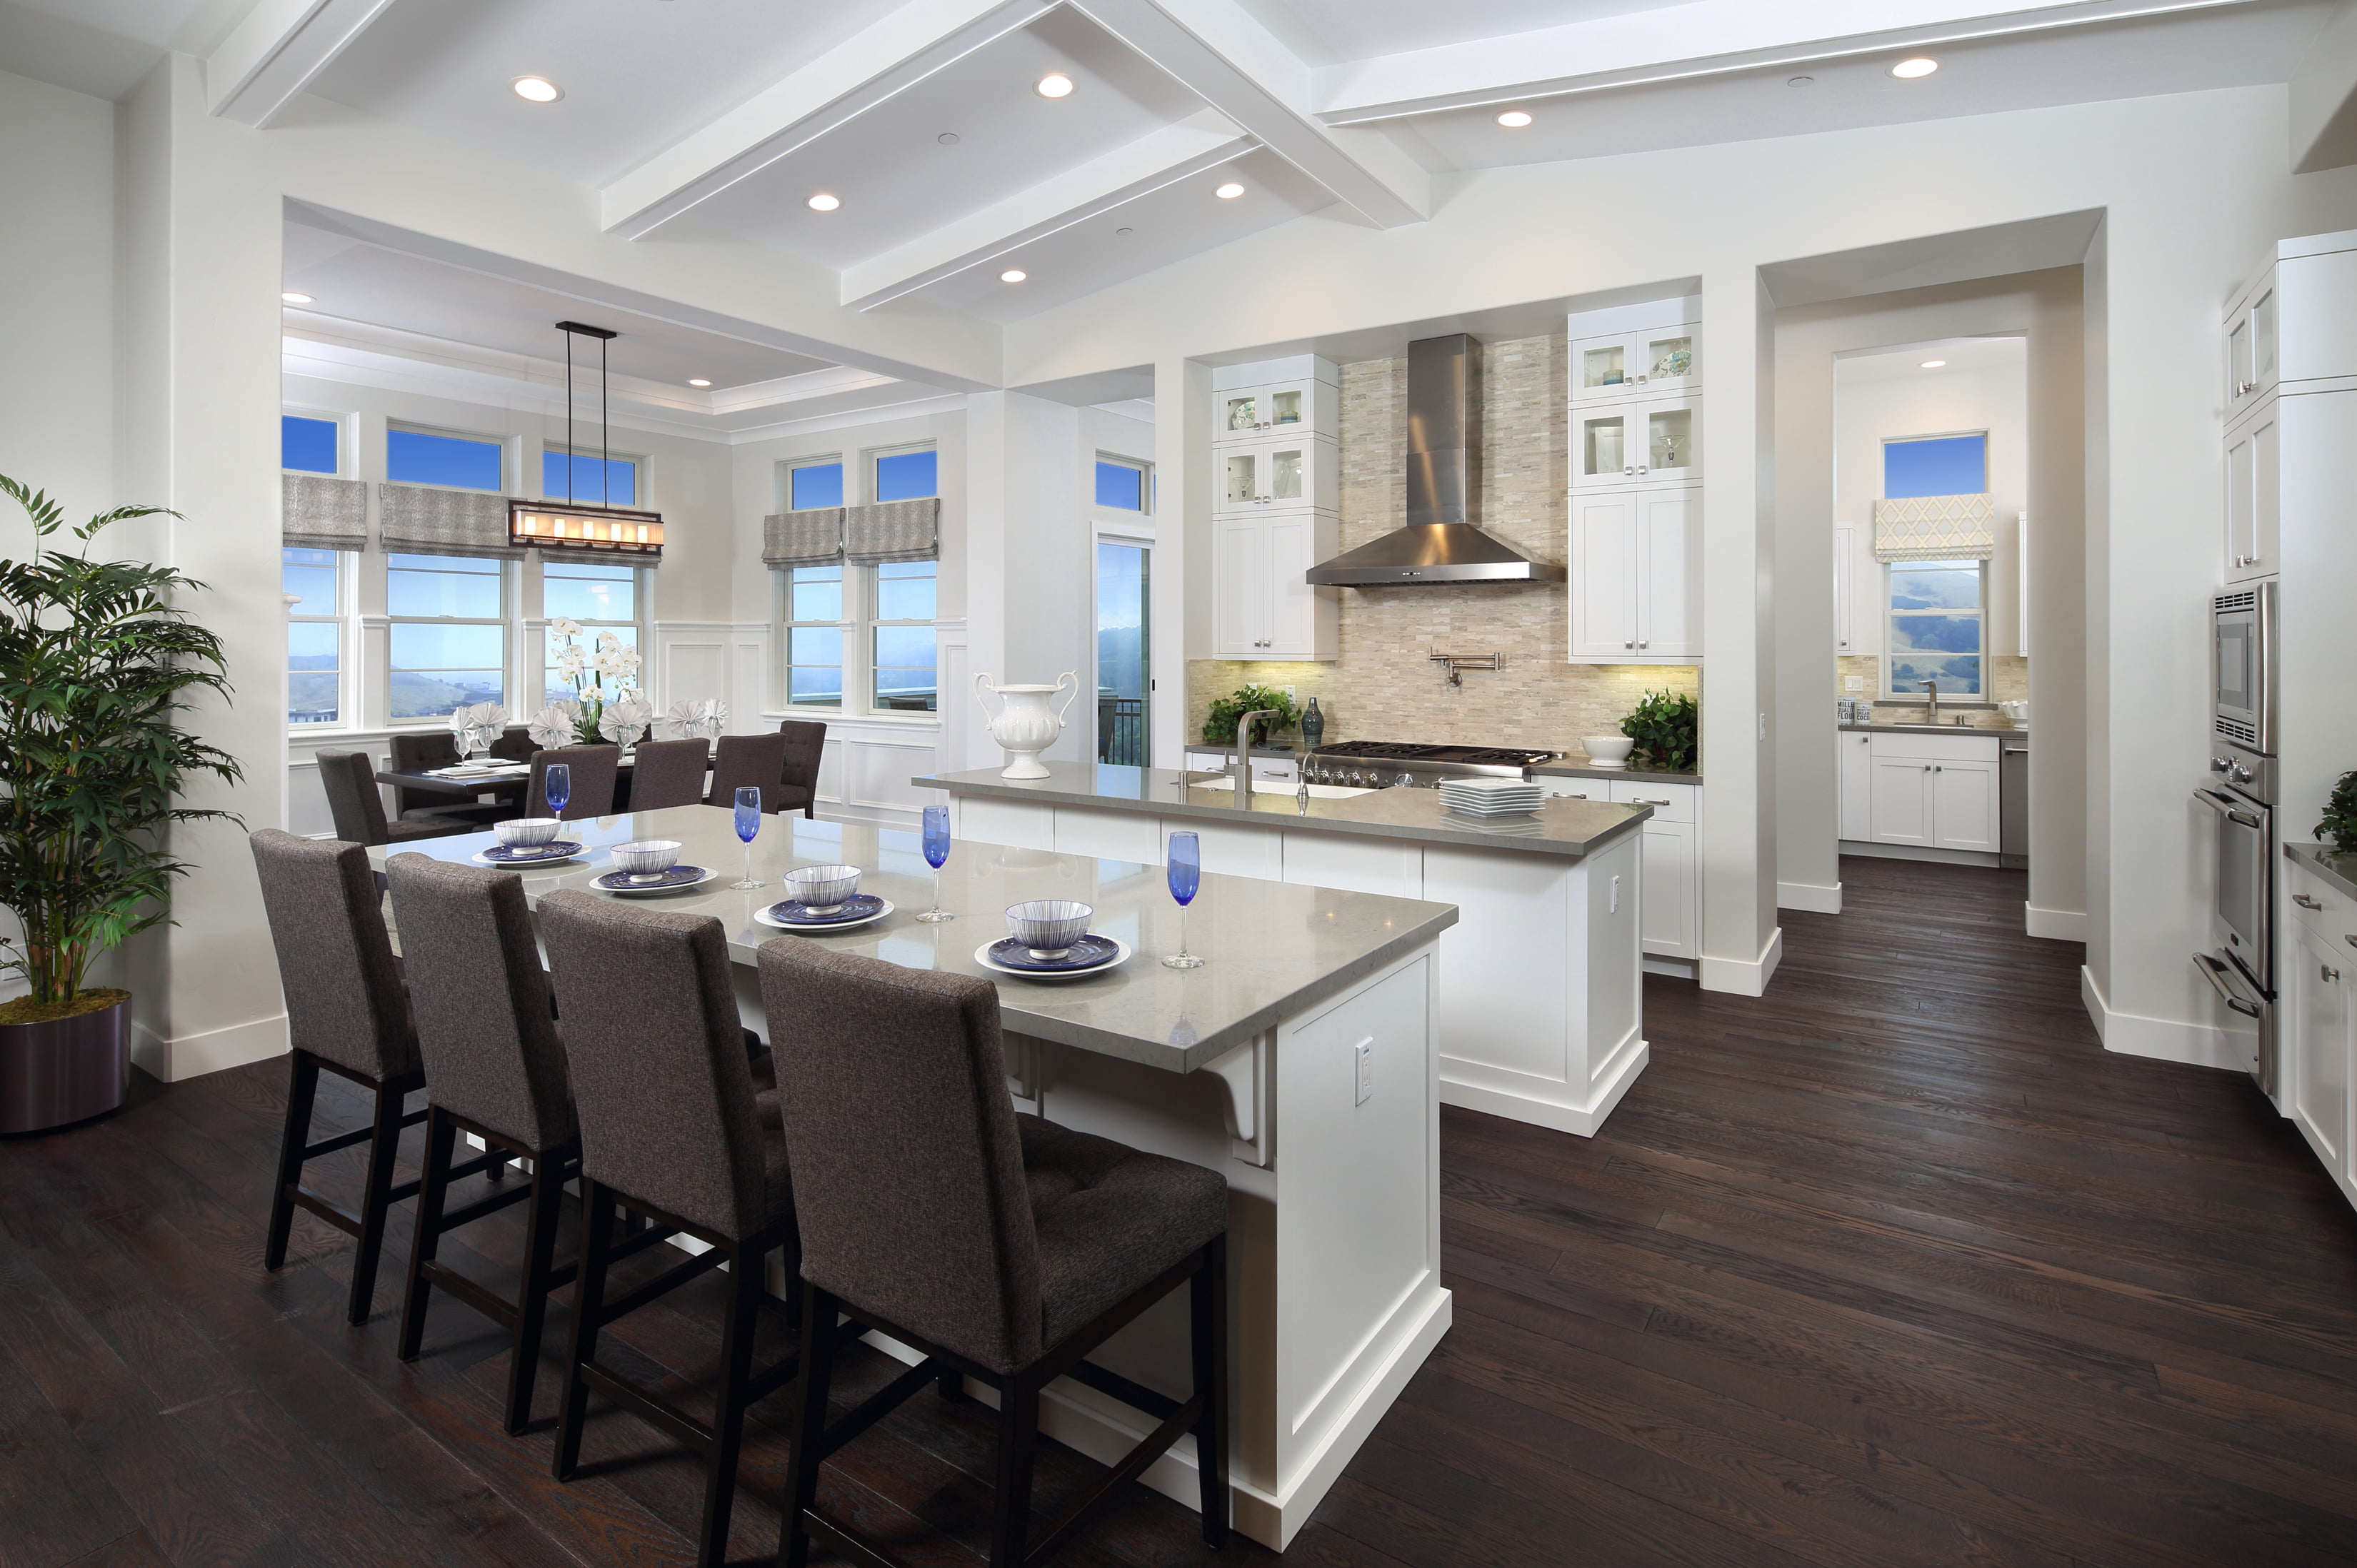 Davidon Homes Offers Old World Charm and New World Convenience in the East Bay at Wilder, Orinda